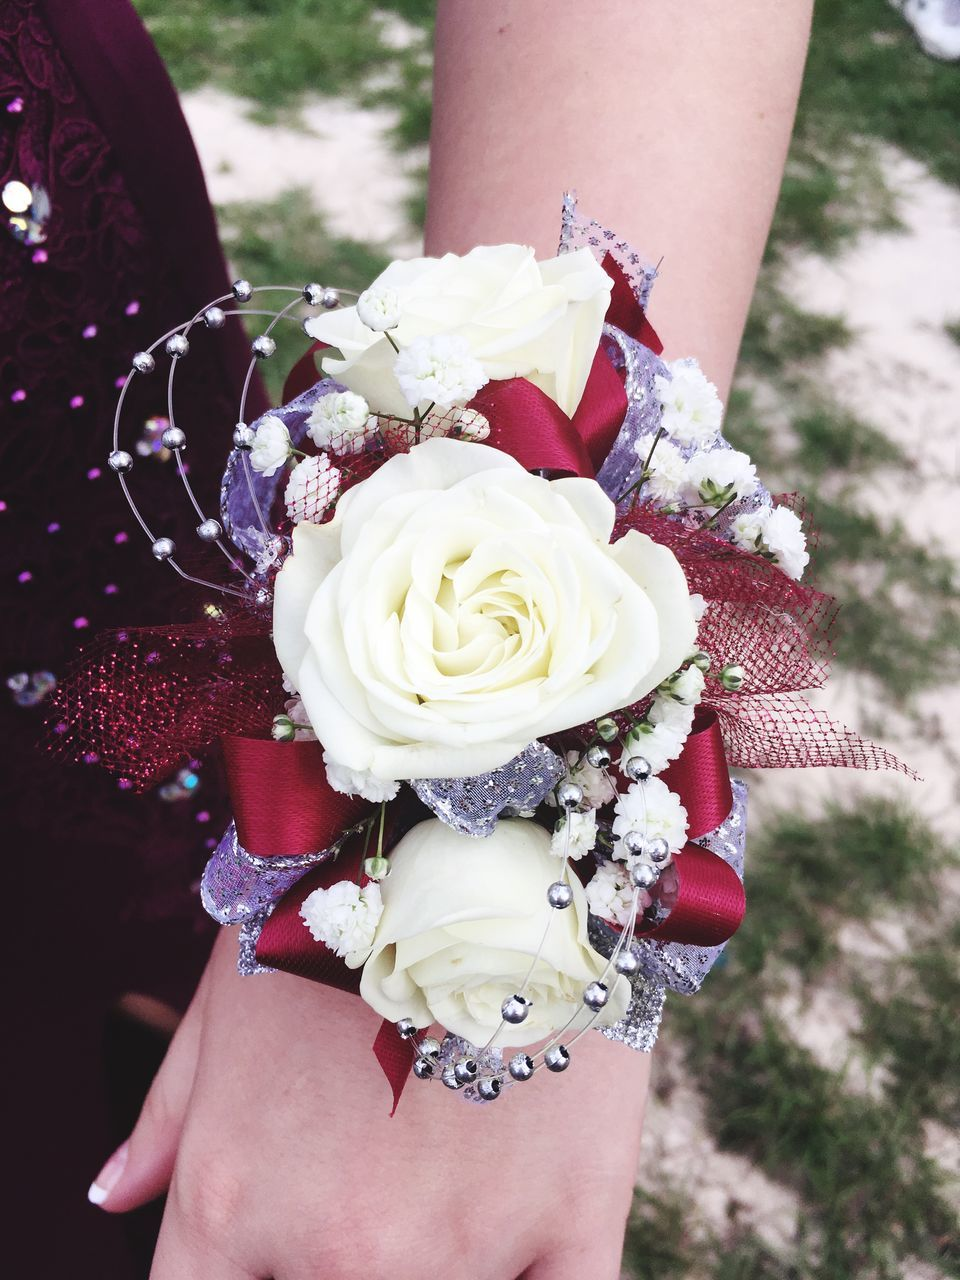 real people, flower, one person, human hand, human body part, rose - flower, holding, women, bouquet, outdoors, leisure activity, day, lifestyles, bracelet, close-up, fragility, bride, focus on foreground, wedding, nature, flower head, life events, beauty in nature, freshness, wedding dress, adult, people